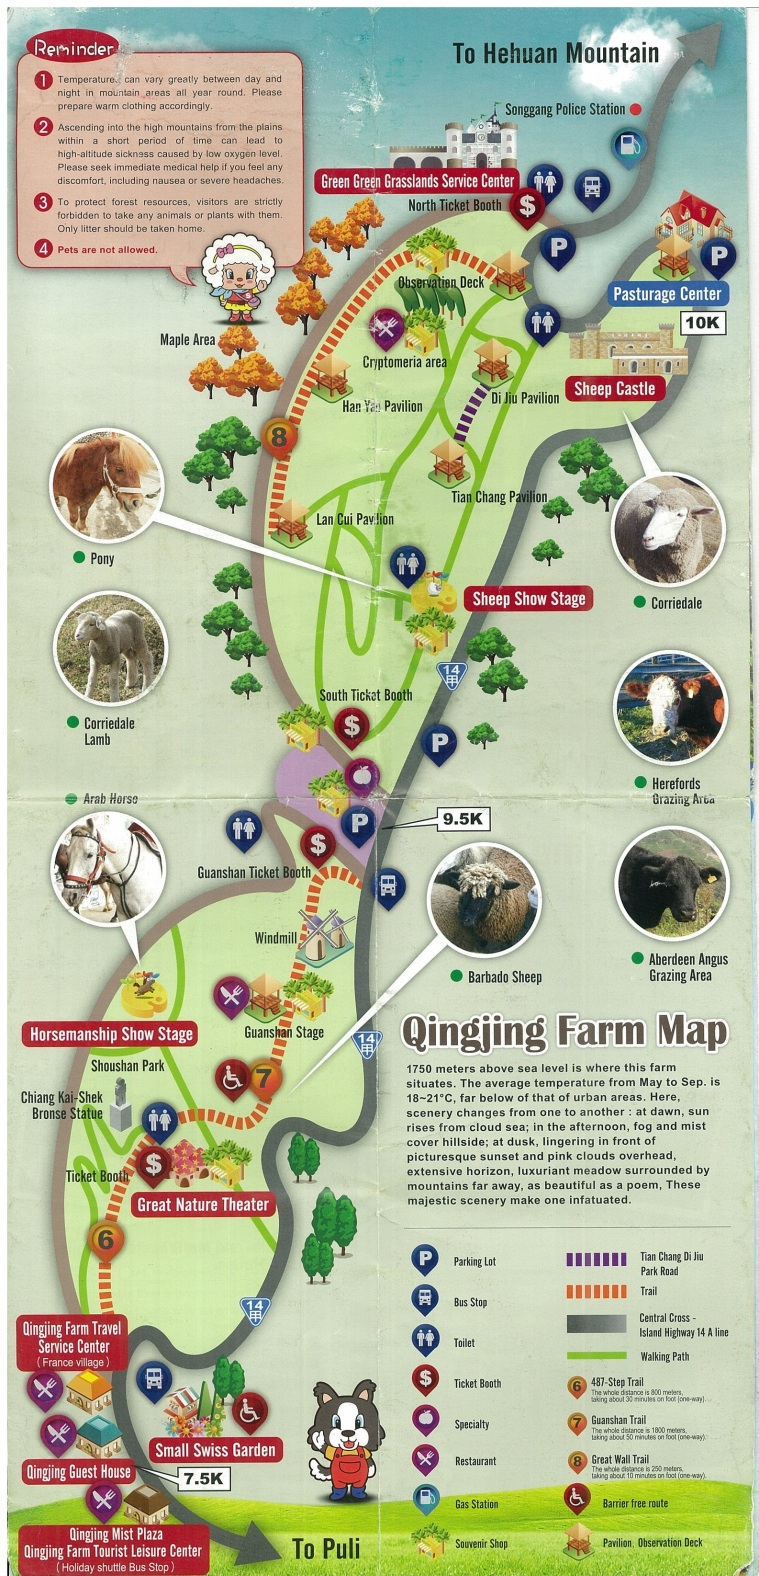 Cingjing Farm Map in English (Taiwan)